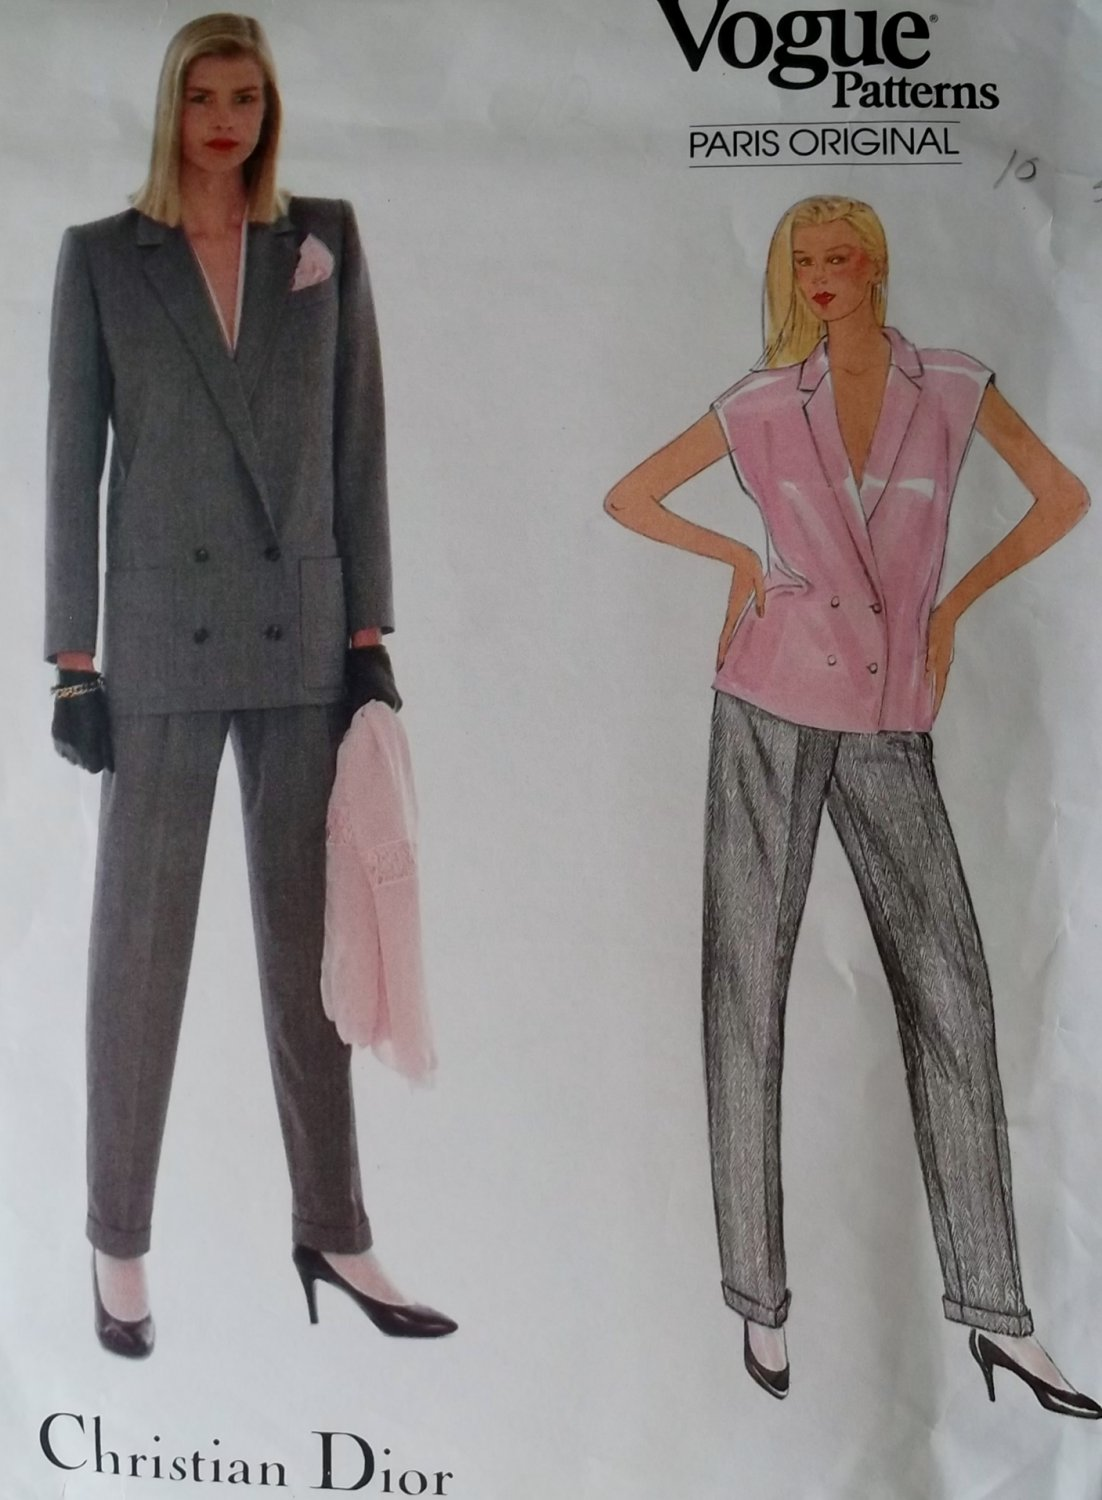 Vogue 1073 Paris Original Christian Dior Designer  Misses' Jacket, Pants and Blouse, size 10 Uncut